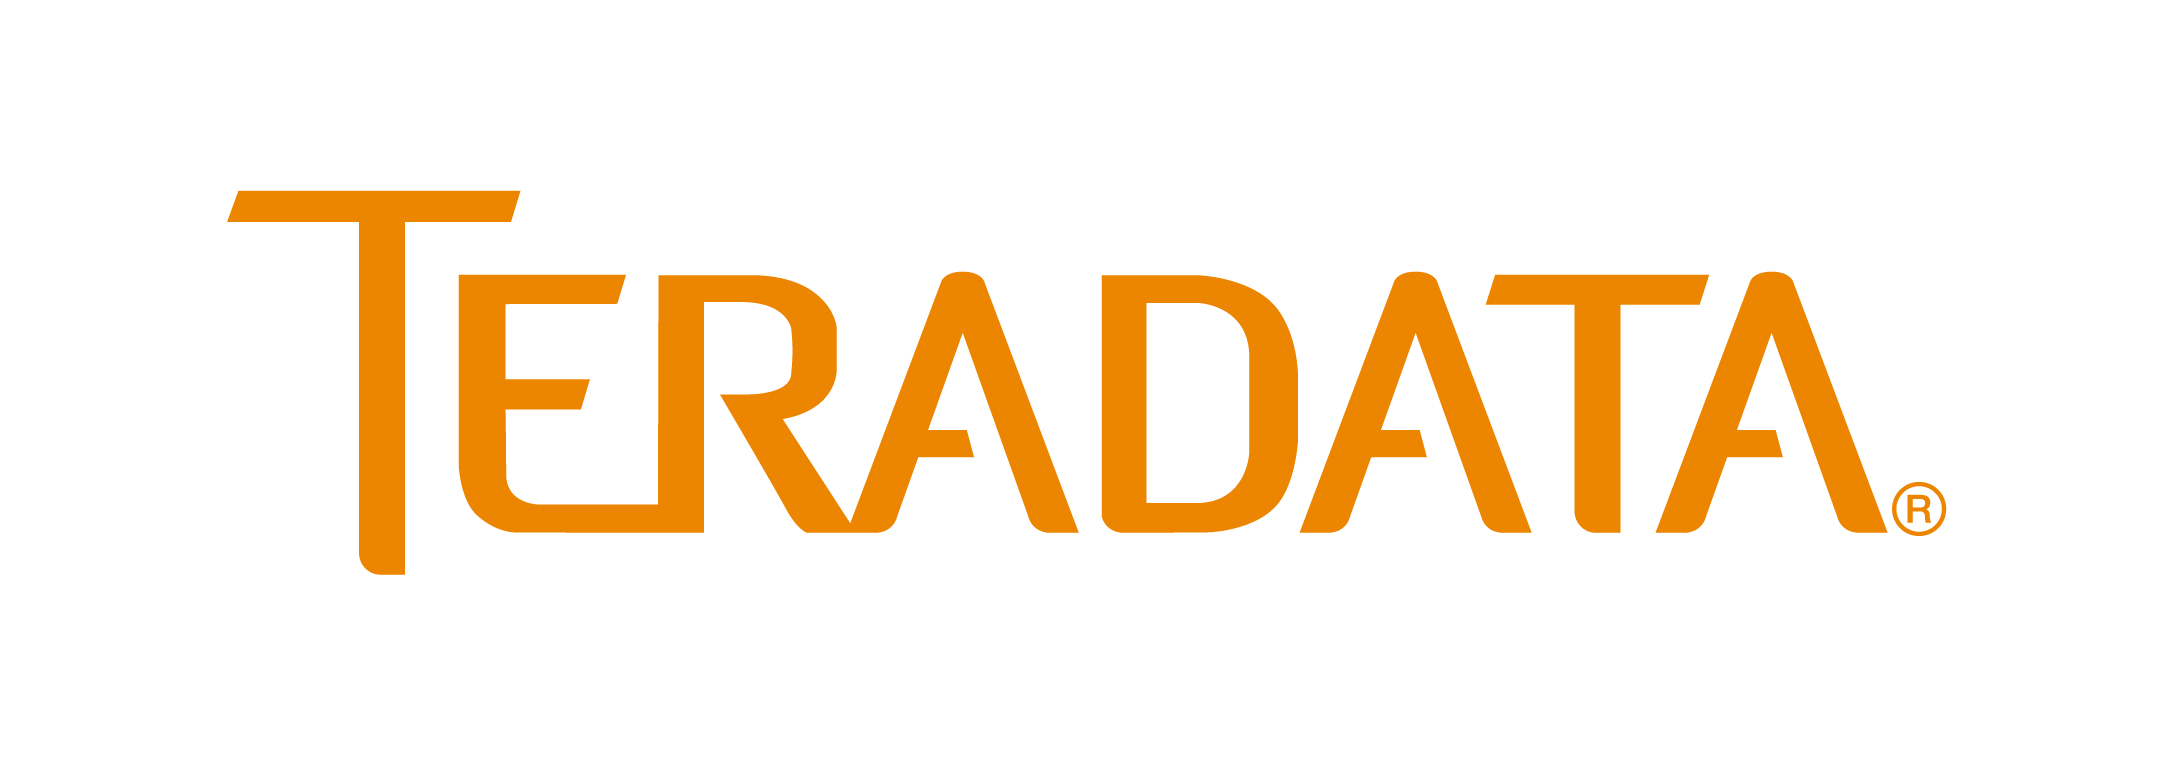 Teradata to Apply New Approach for Data Lake Deployment